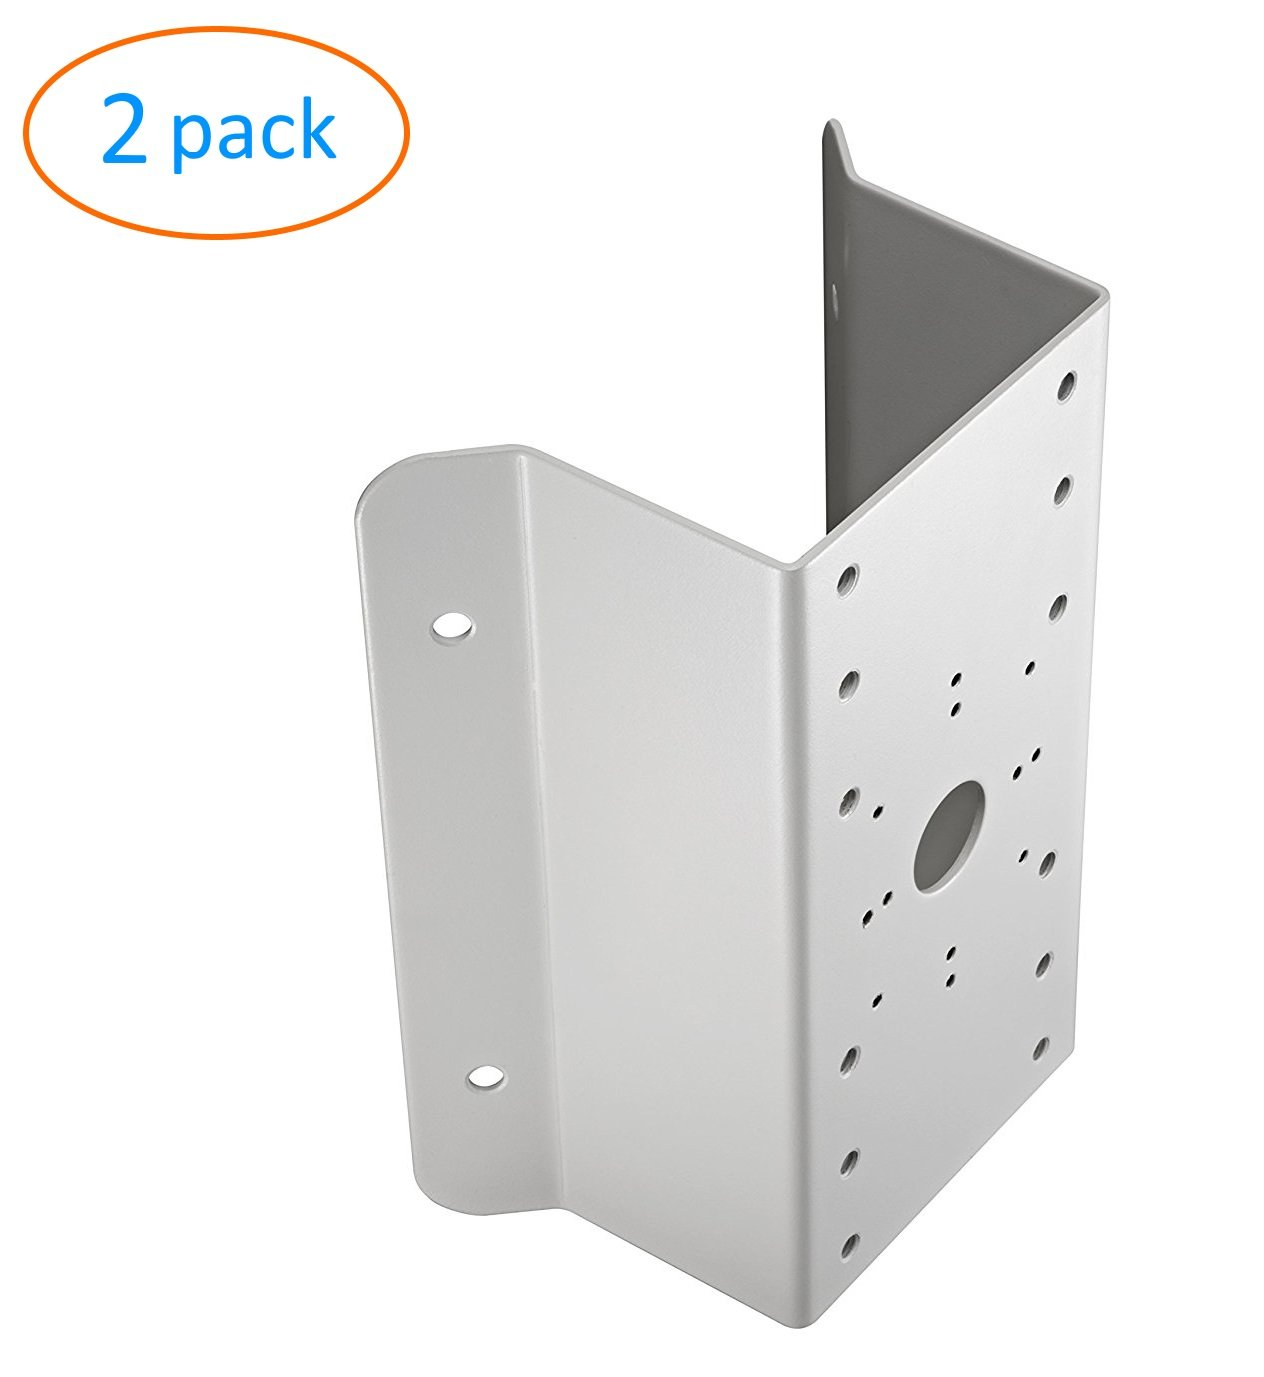 cm DS-1276ZJ Universal Corner Bracket Most Hikvision Wall Mounts Cameras - 2 Pack by KENUCO